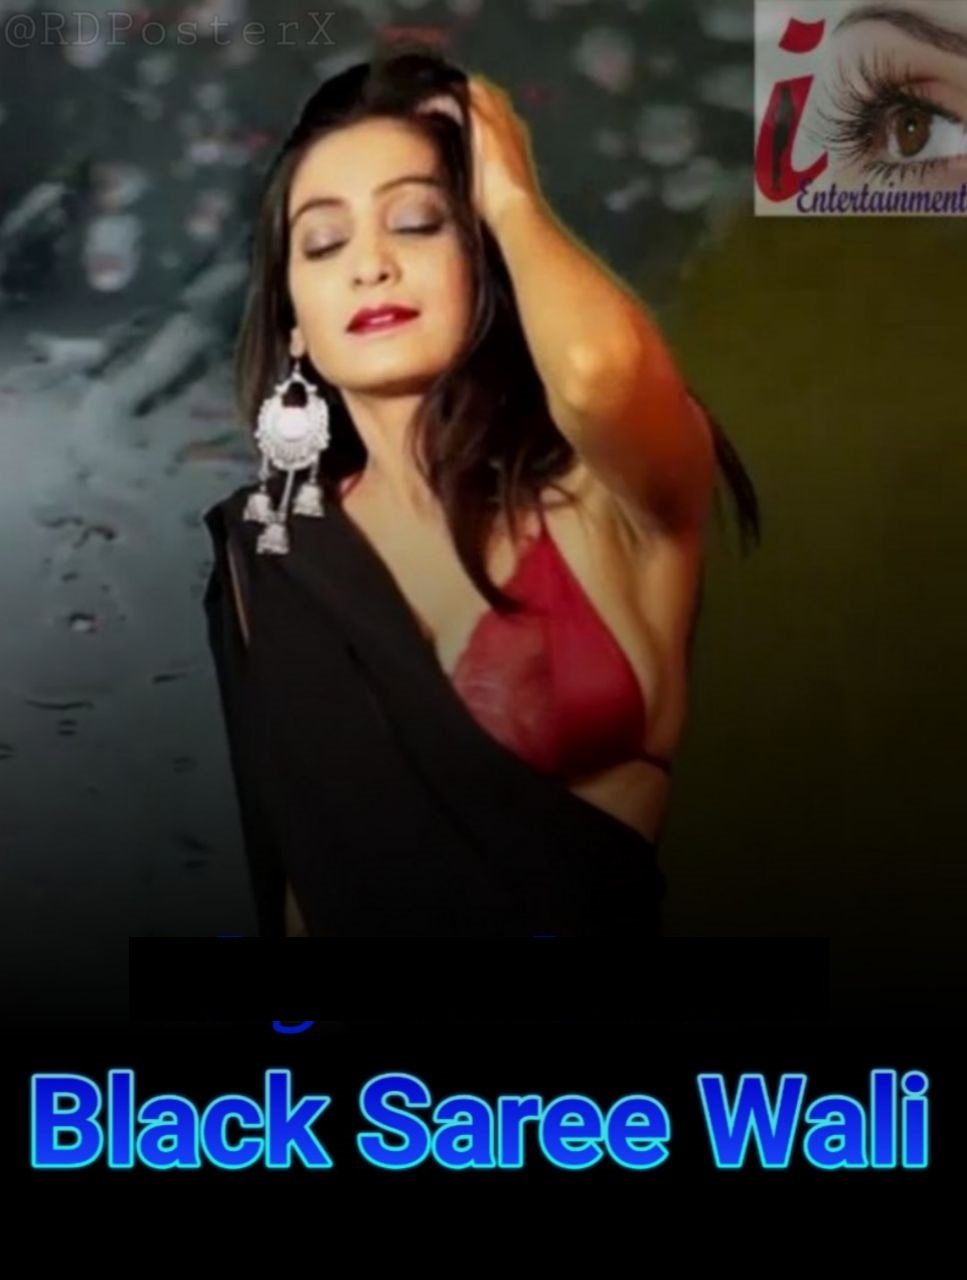 Black Saree Wali (2020) I Entertainment Exclusive